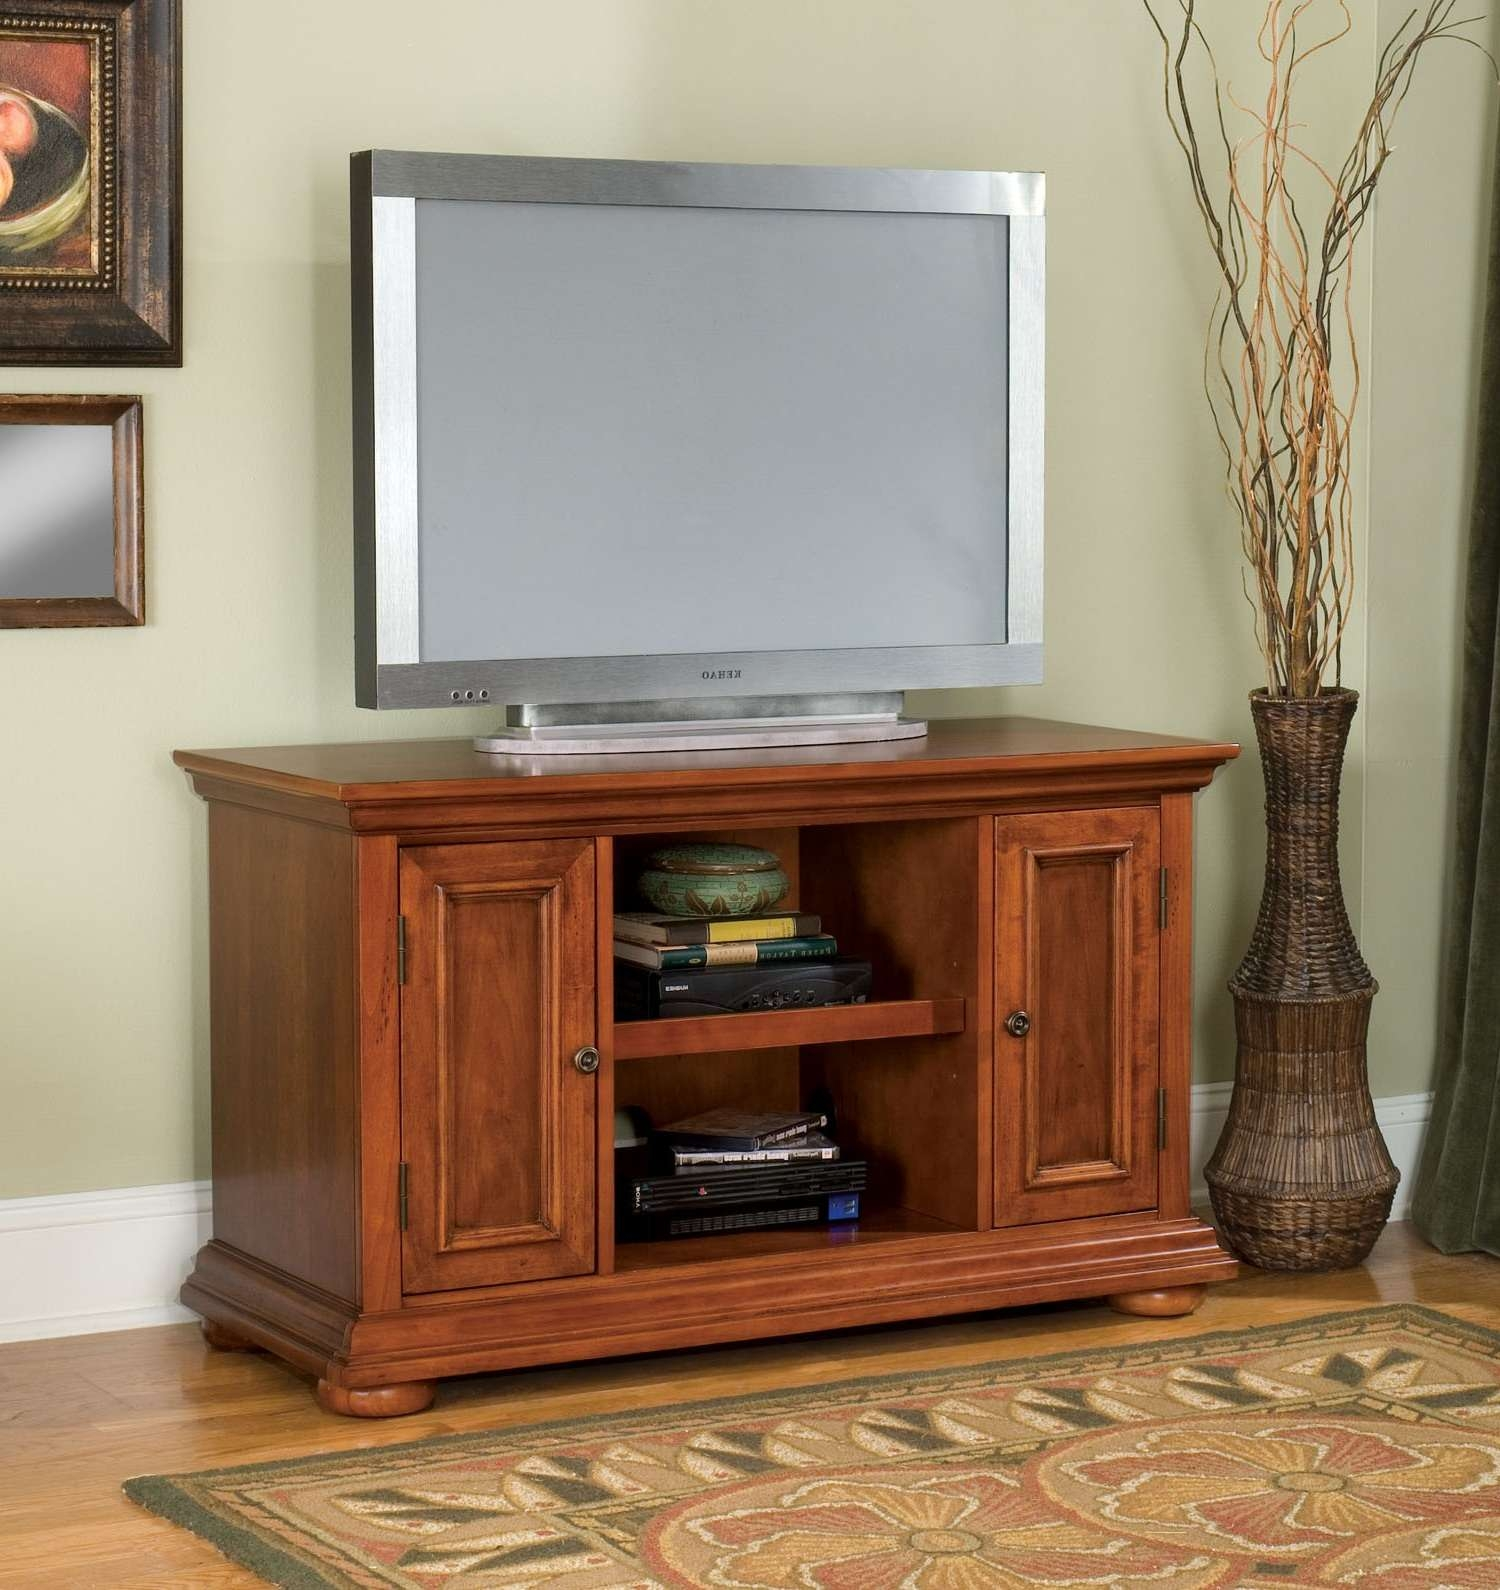 Rectangle Reverse Knife Edge Profile Cherry Wood Tv Cabinet Stand Pertaining To Cherry Wood Tv Cabinets (View 11 of 20)